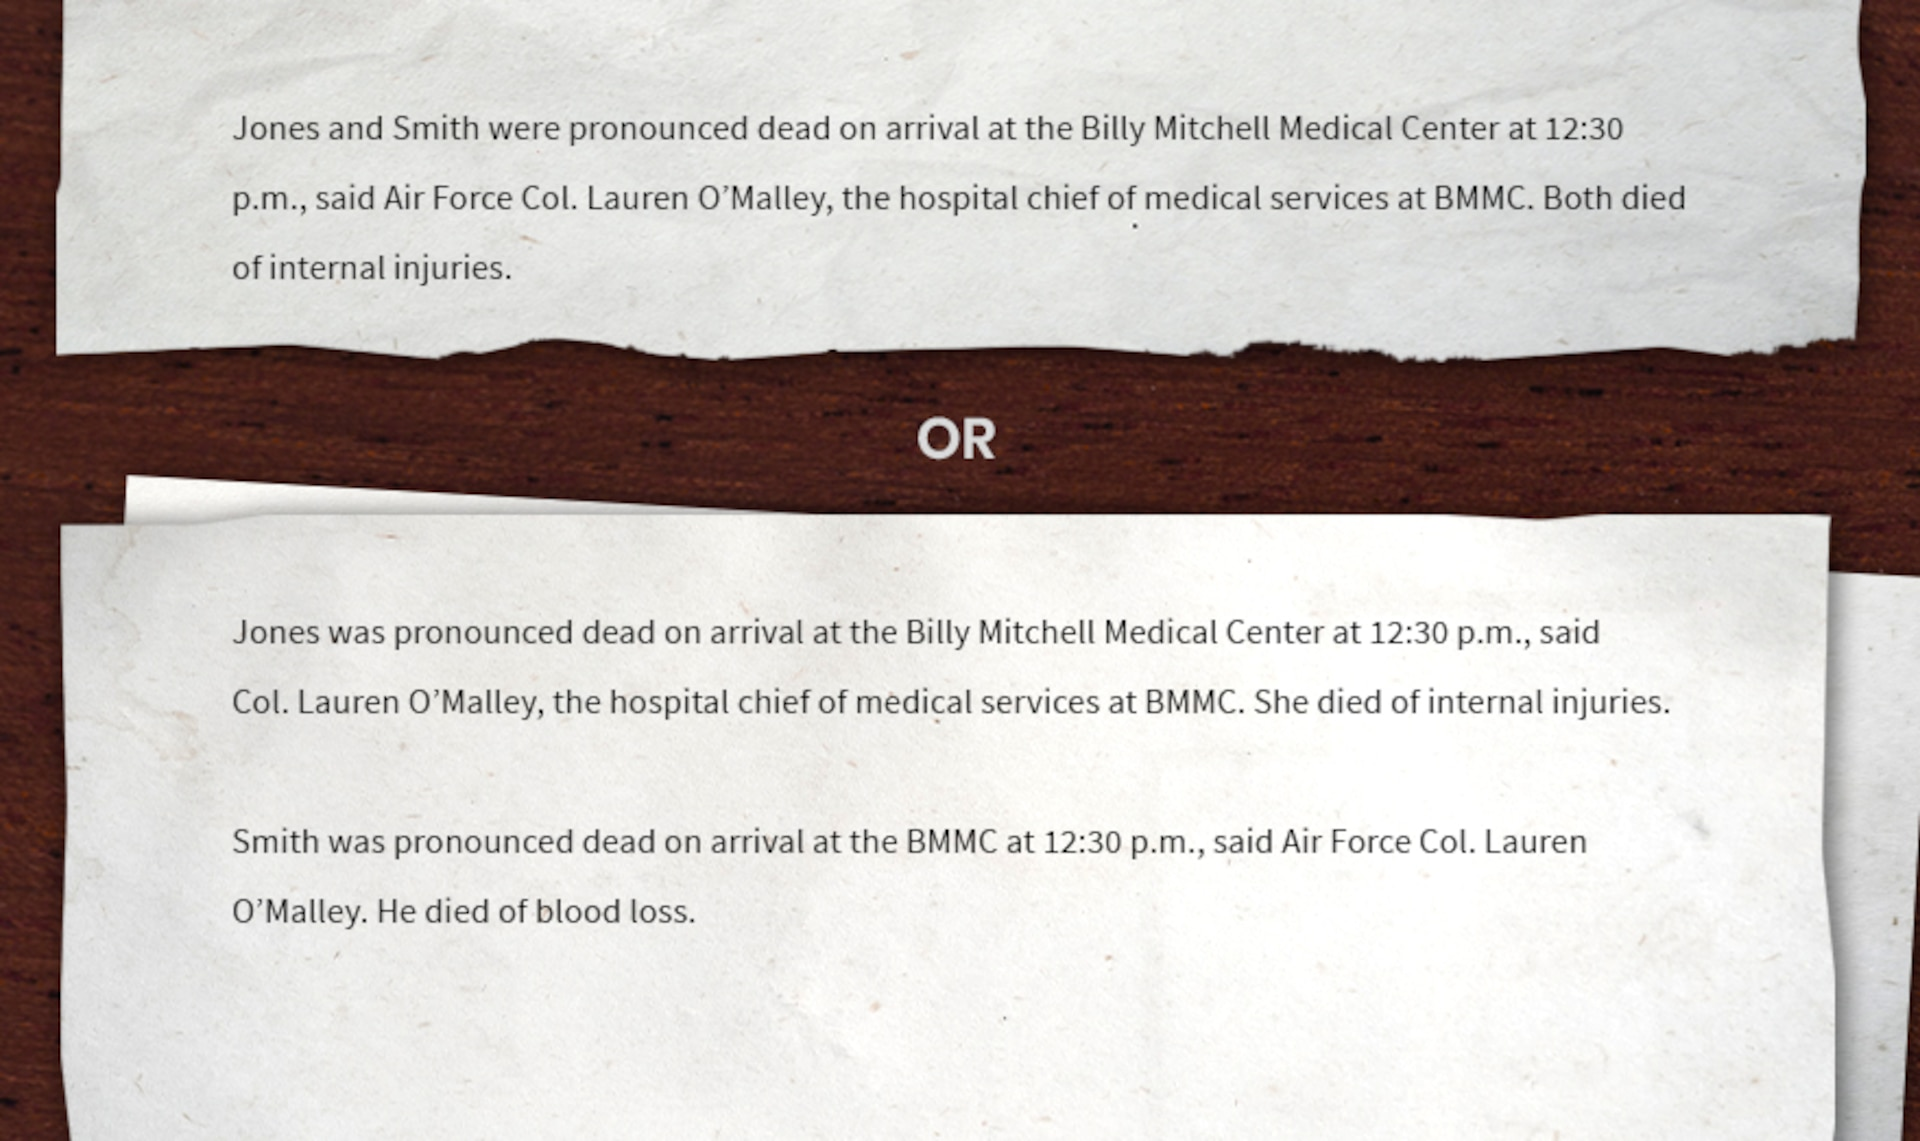 Writing sample for writing the medical information: Jones and Smith were pronounced dead on arrival at the Billy Mitchell Medical Center at 12:30 p.m., said Col. Lauren O'Malley, the hospital chief of medical services at BMMC. Both died of internal injuries. Or Jones was pronounced dead on arrival at the Billy Mitchell Medical Center at 12:30 p.m., said Col. Lauren O'Malley, the hospital chief of medical services at BMMC. She died of internal injuries. Smith was pronounced dead on arrival at the BMMC at 12:30 p.m., said O'Malley. He died of blood loss.